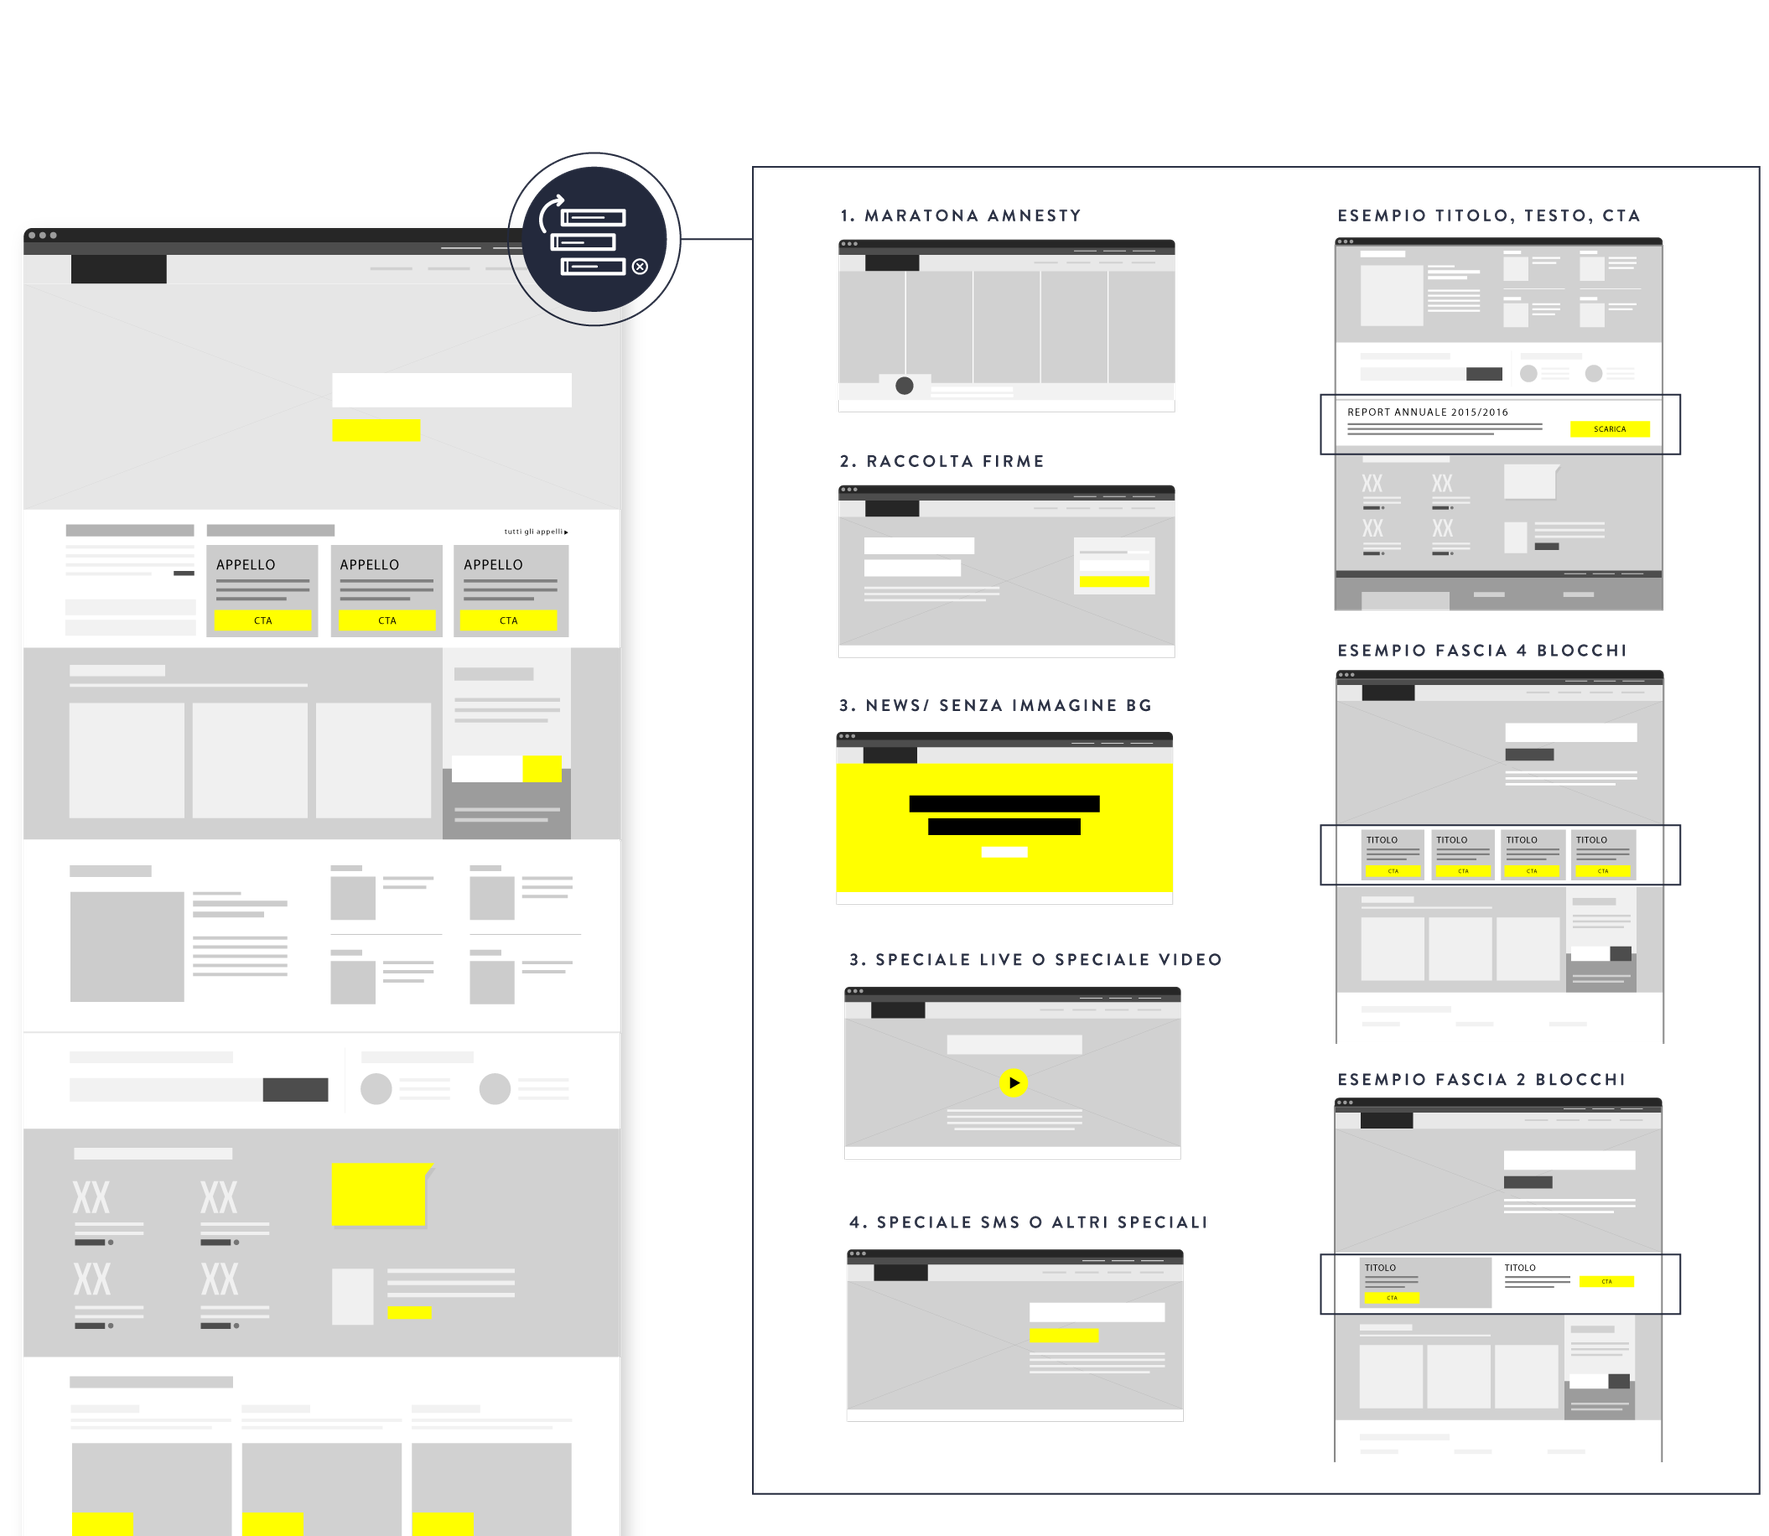 image of the user interface wireframe